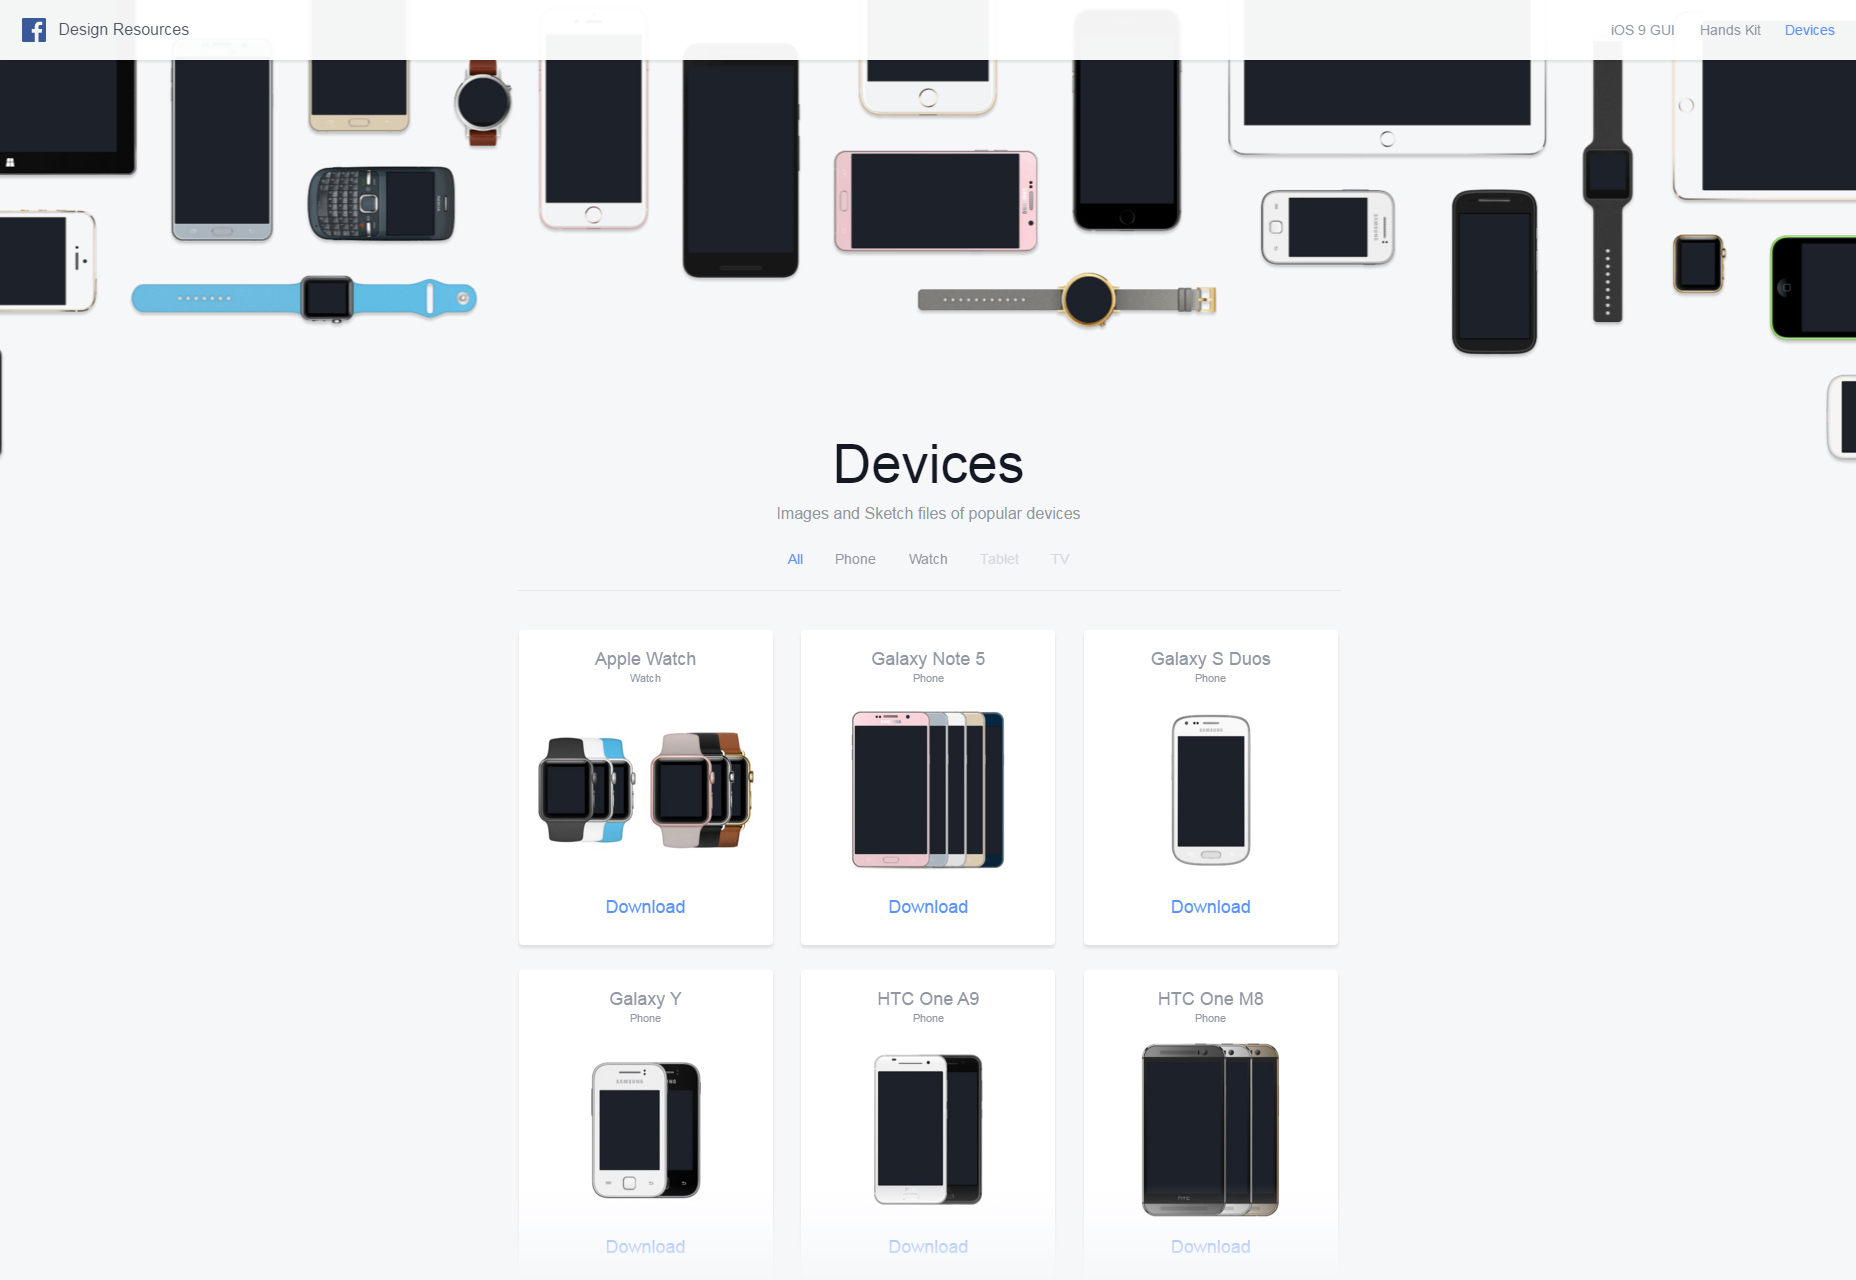 Facebook's Devices Design Resources